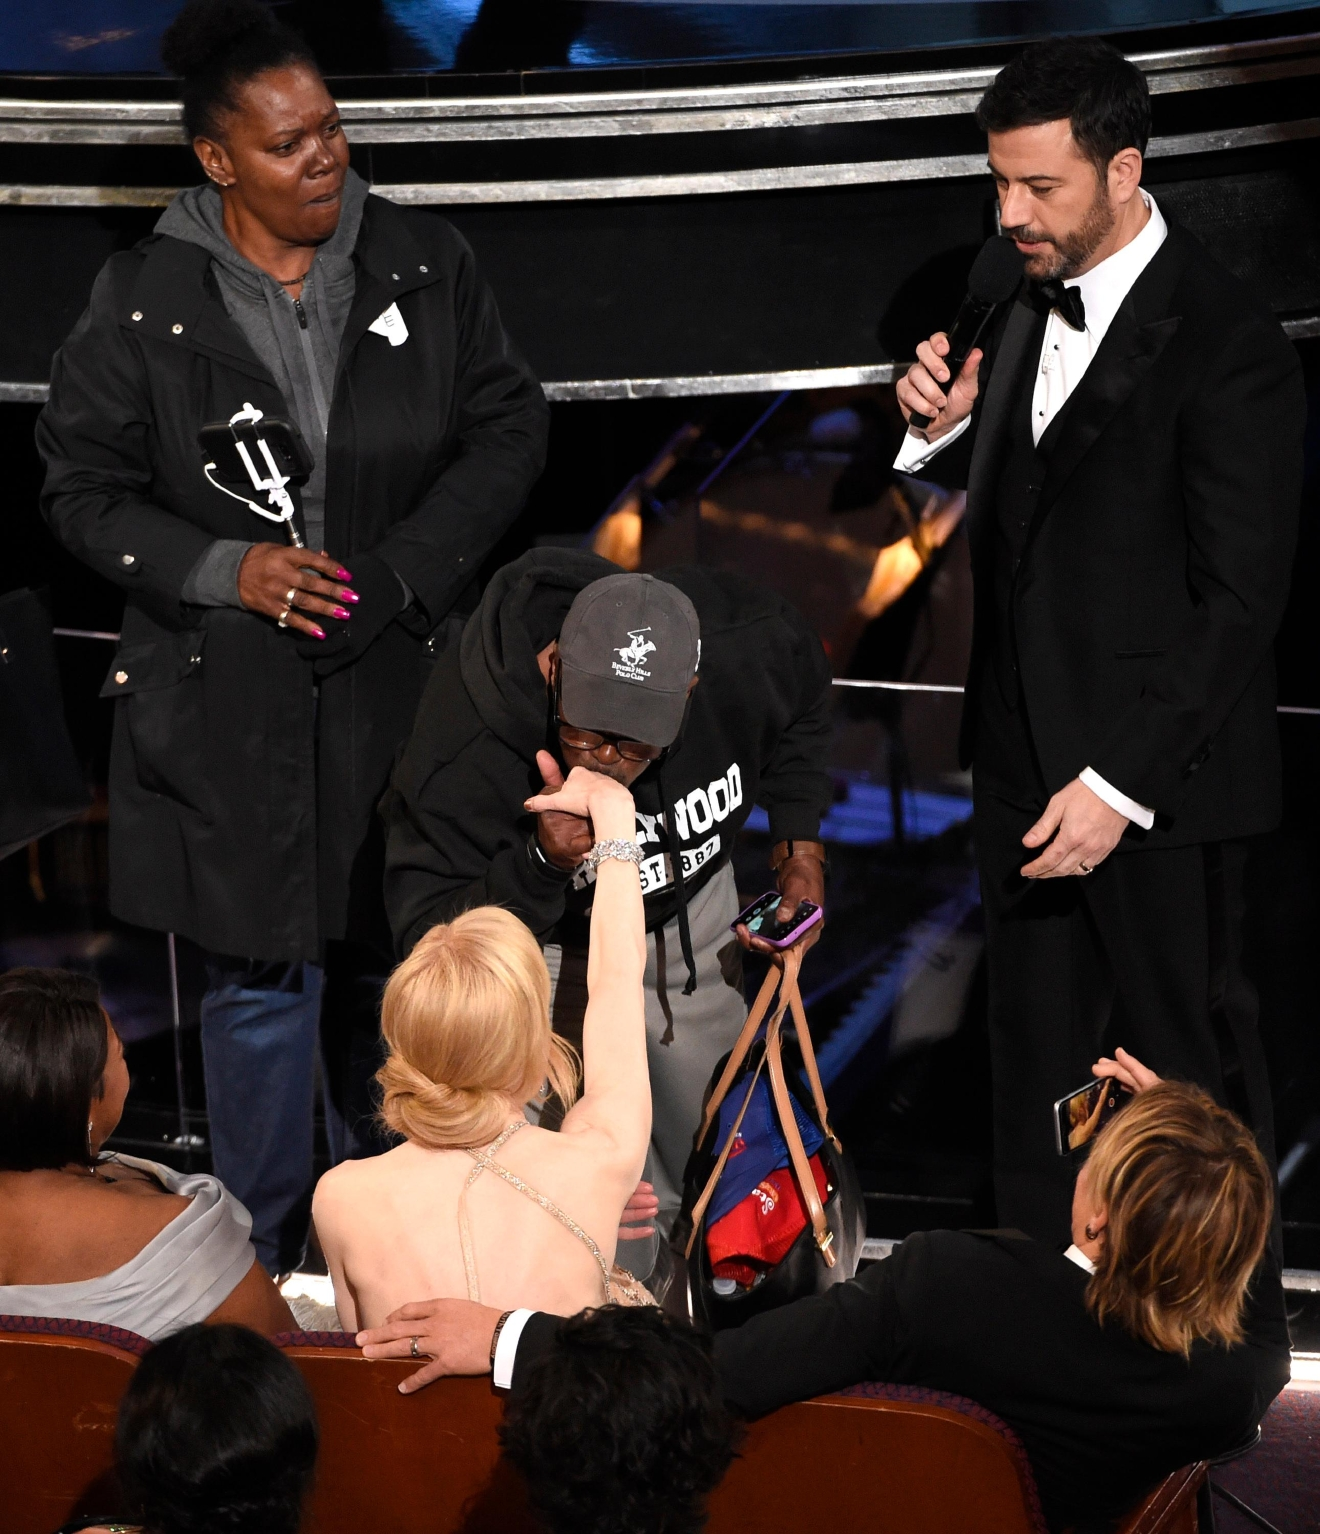 Jimmy Kimmel, from right, looks on as a tourist named Gary kisses Nicole Kidman's hand at the Oscars on Sunday, Feb. 26, 2017, at the Dolby Theatre in Los Angeles. (Photo by Chris Pizzello/Invision/AP)